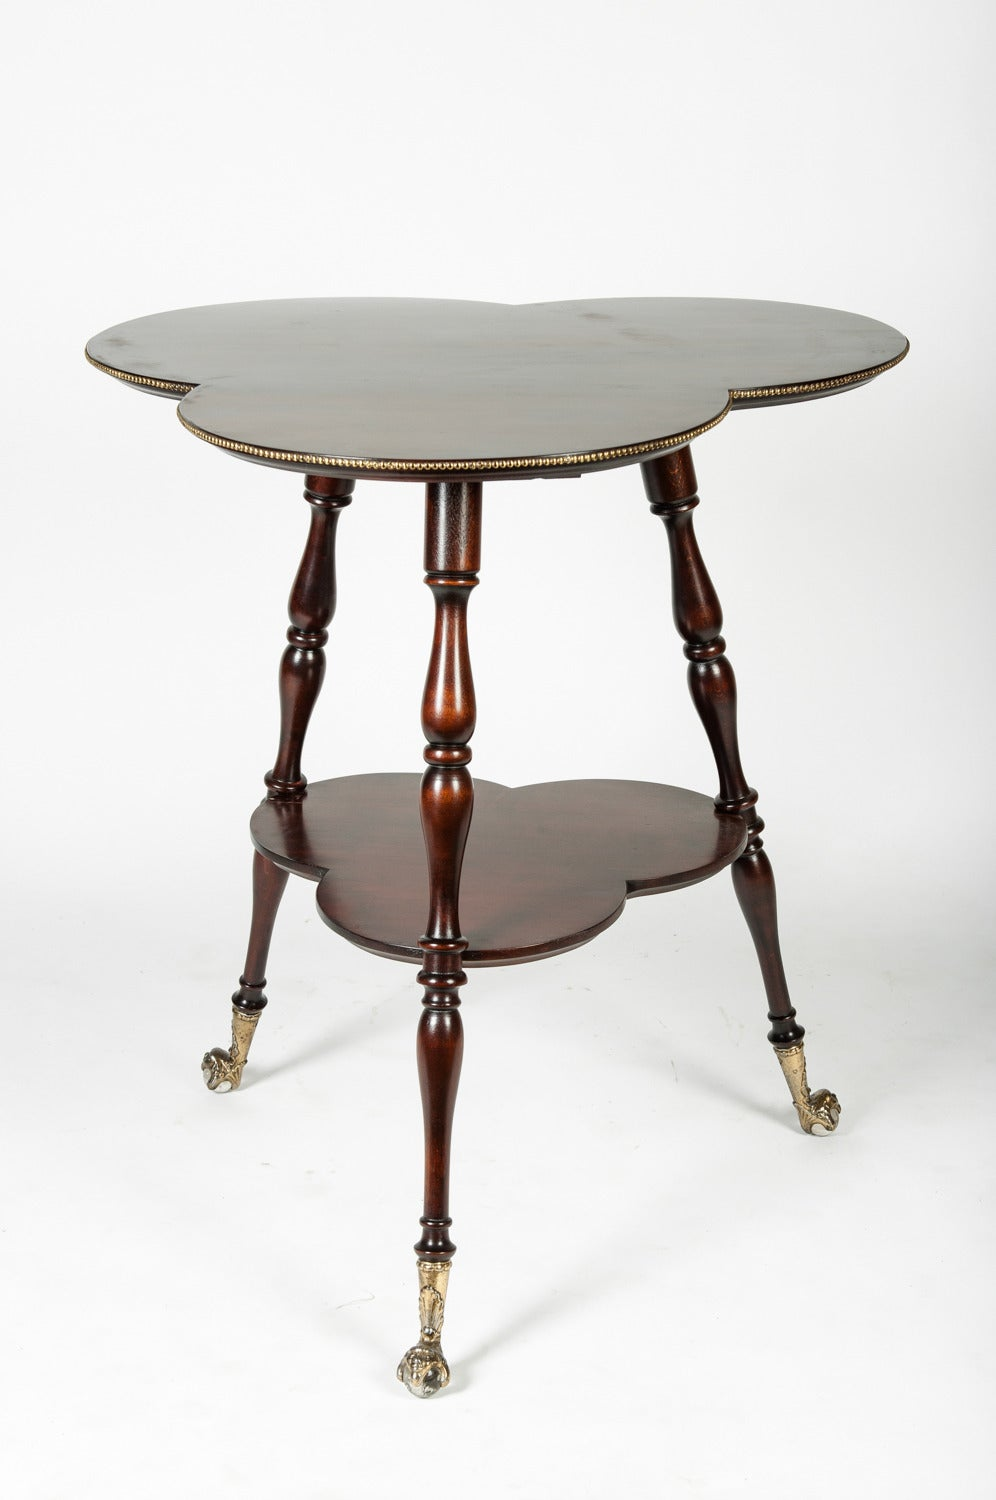 Antique english clover leaf side table at 1stdibs for England table